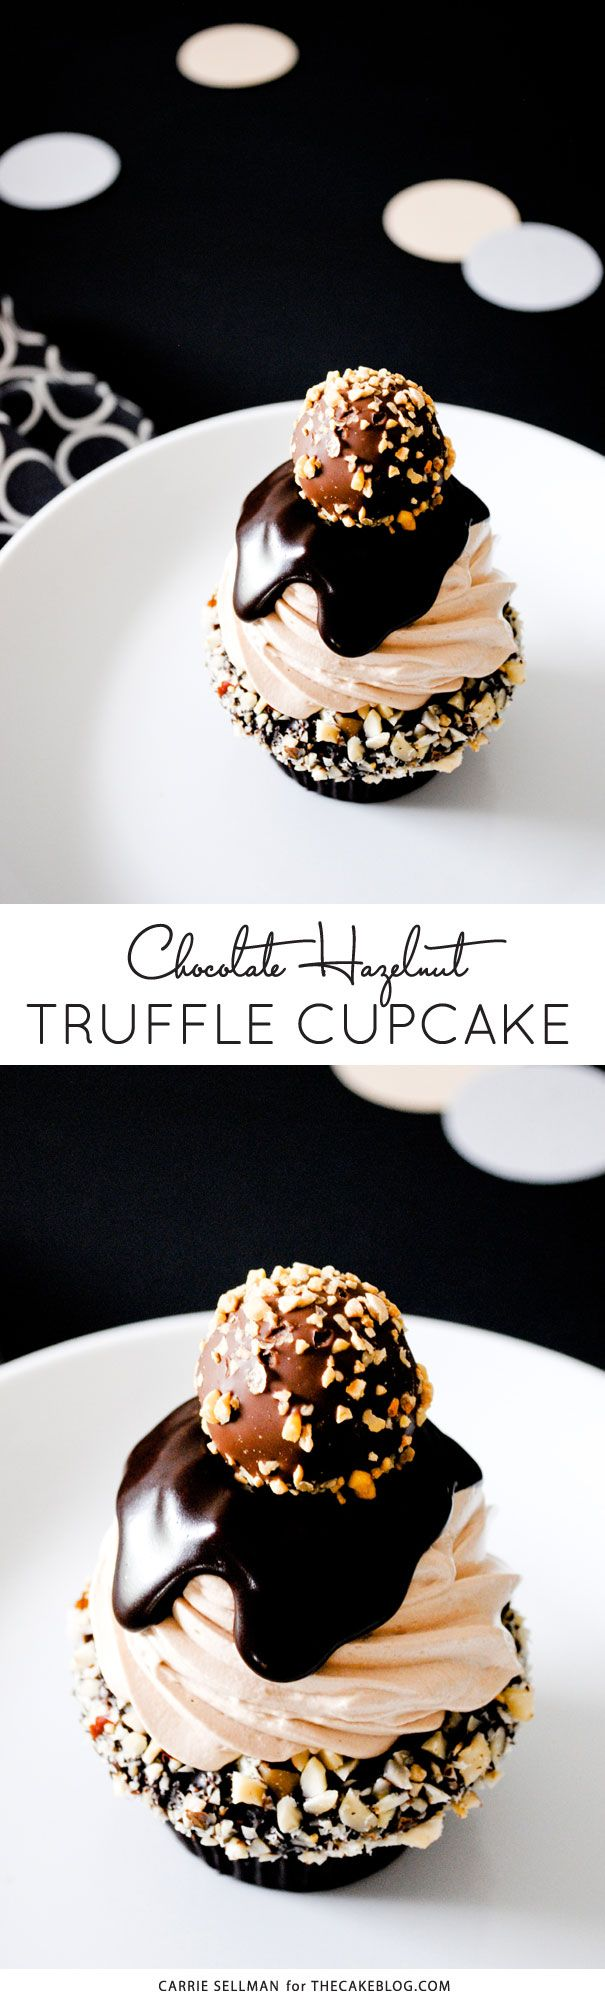 Godiva Truffle Flight & Cupcake Recipe